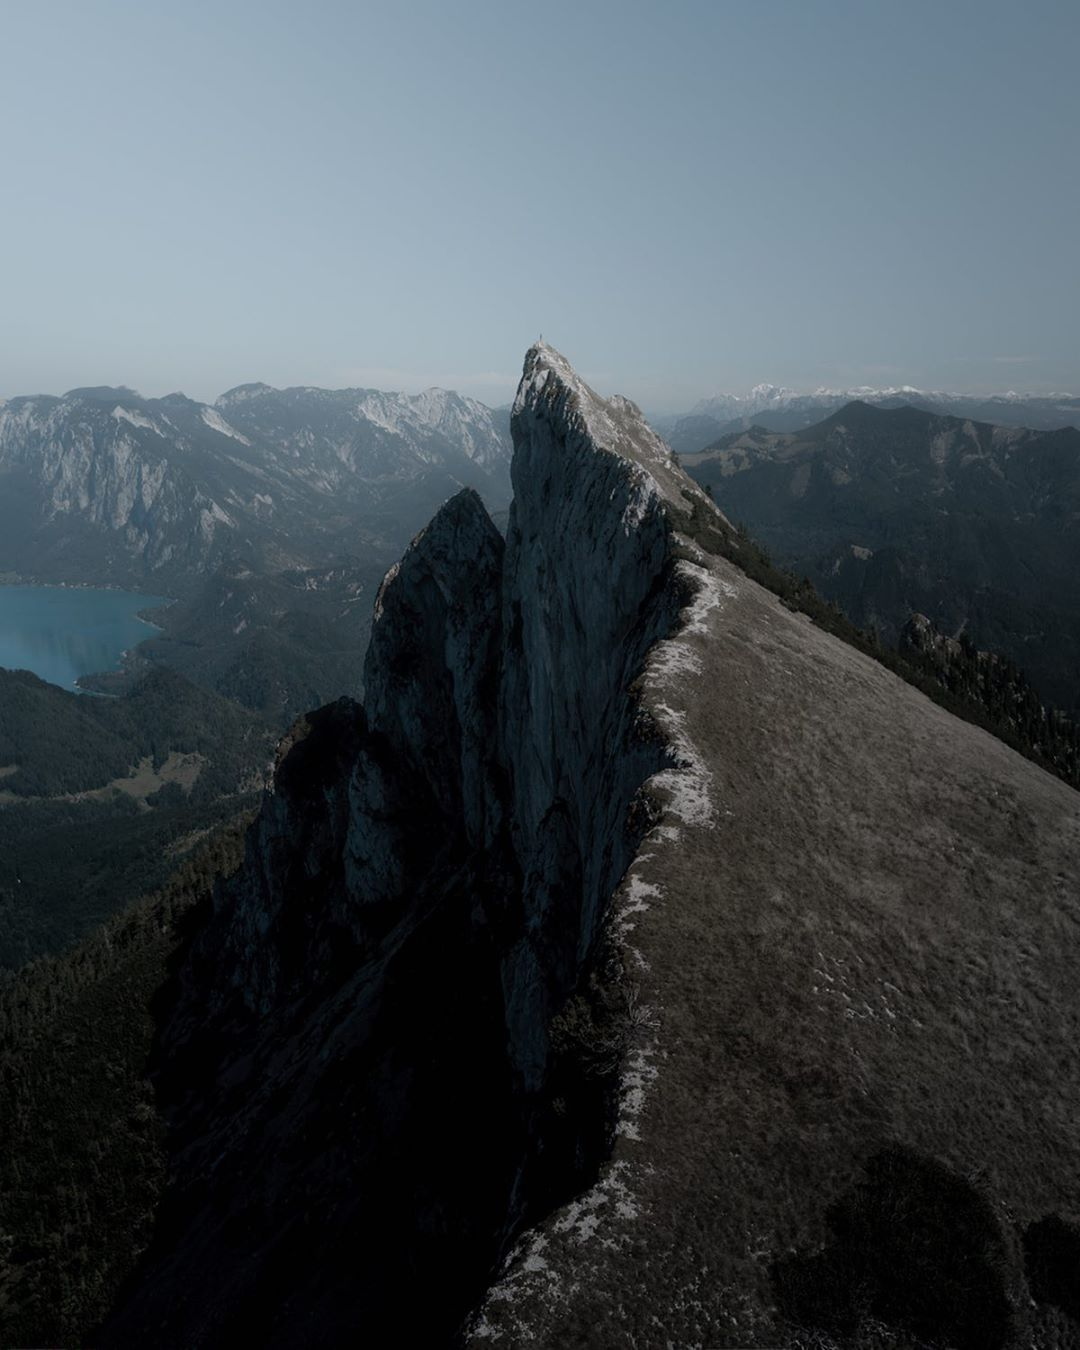 Mountain Peak Photographed with a Drone